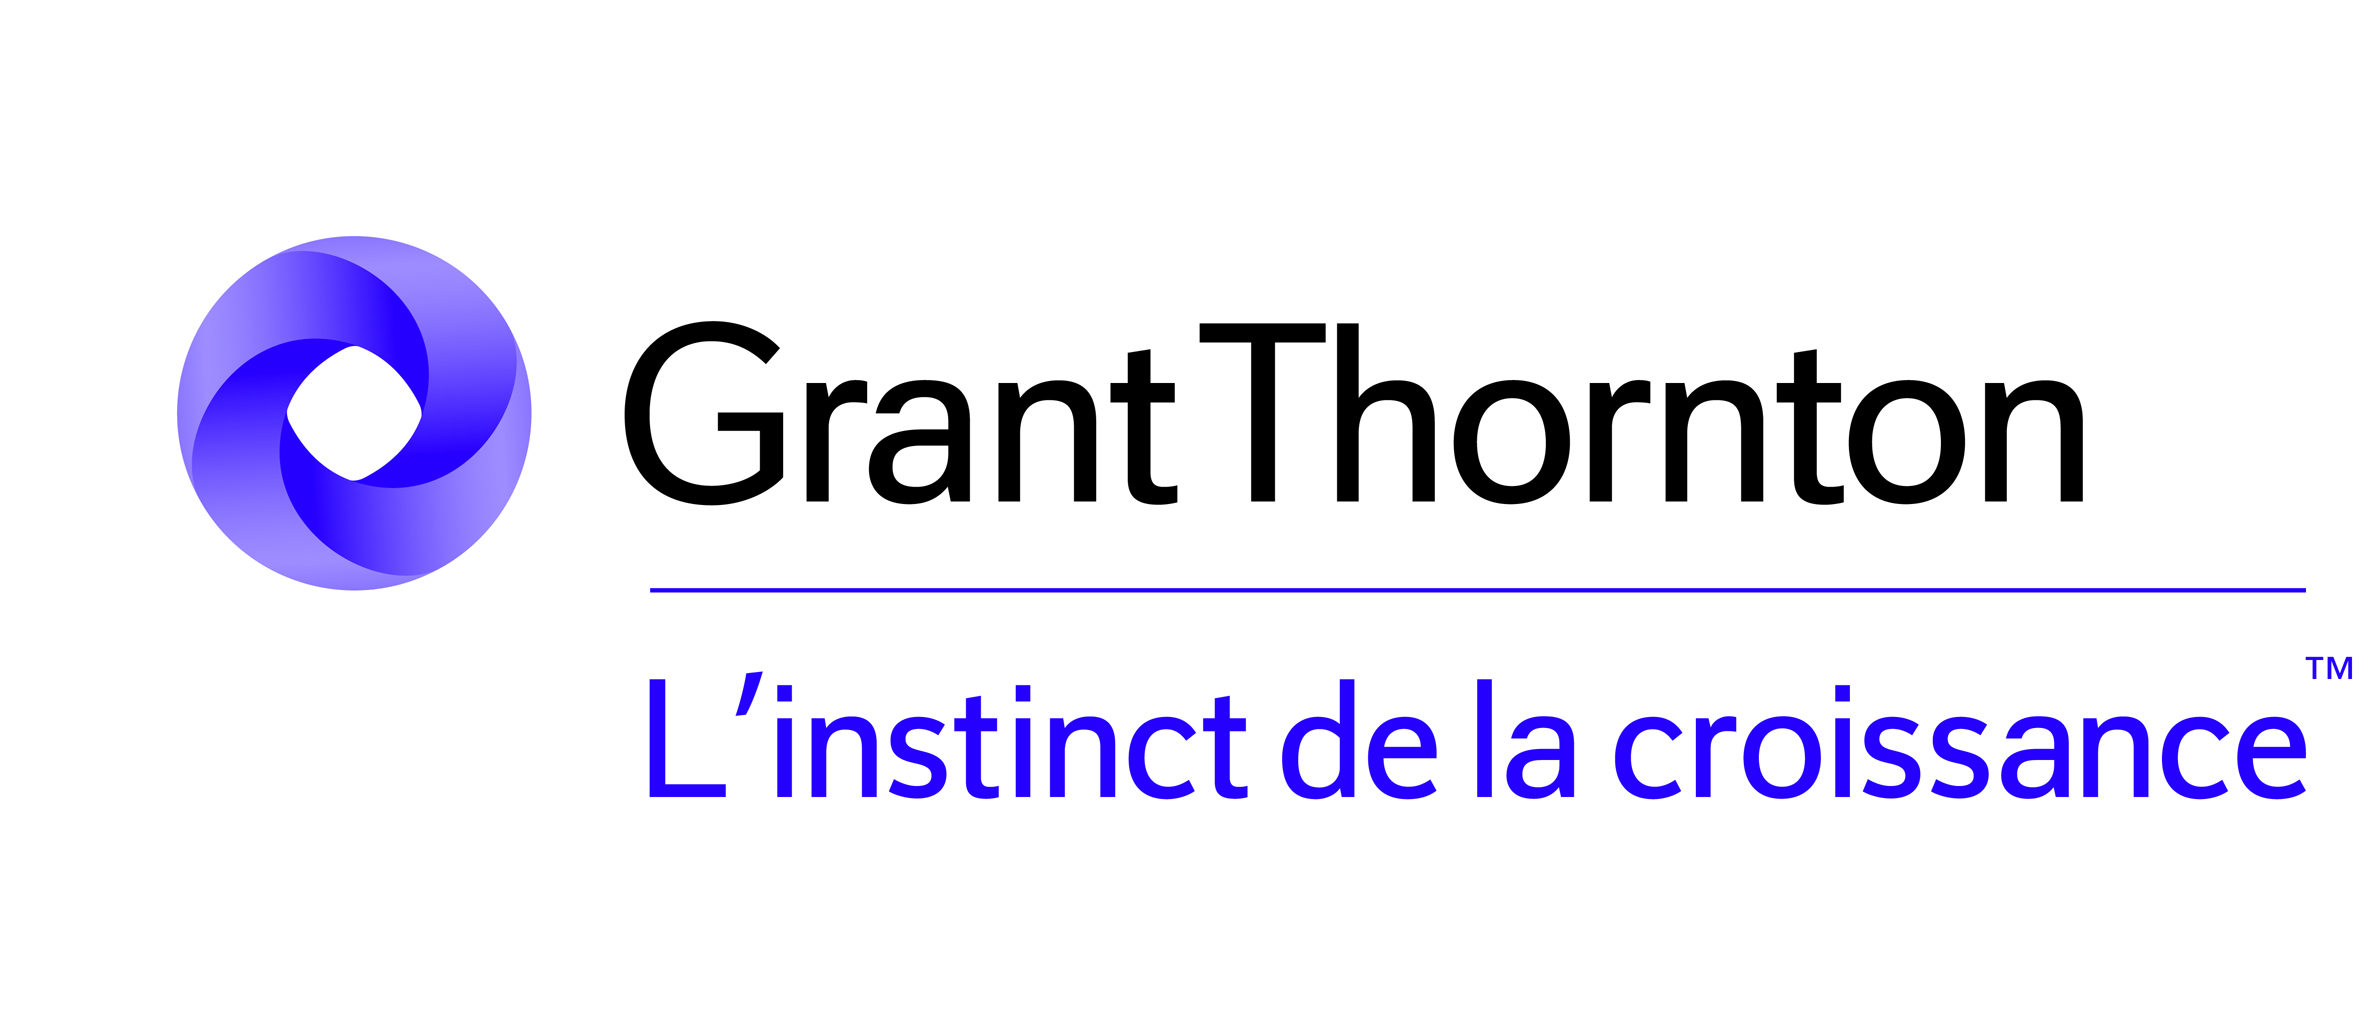 GRANT THORNTON France-medium-Primary.jpg